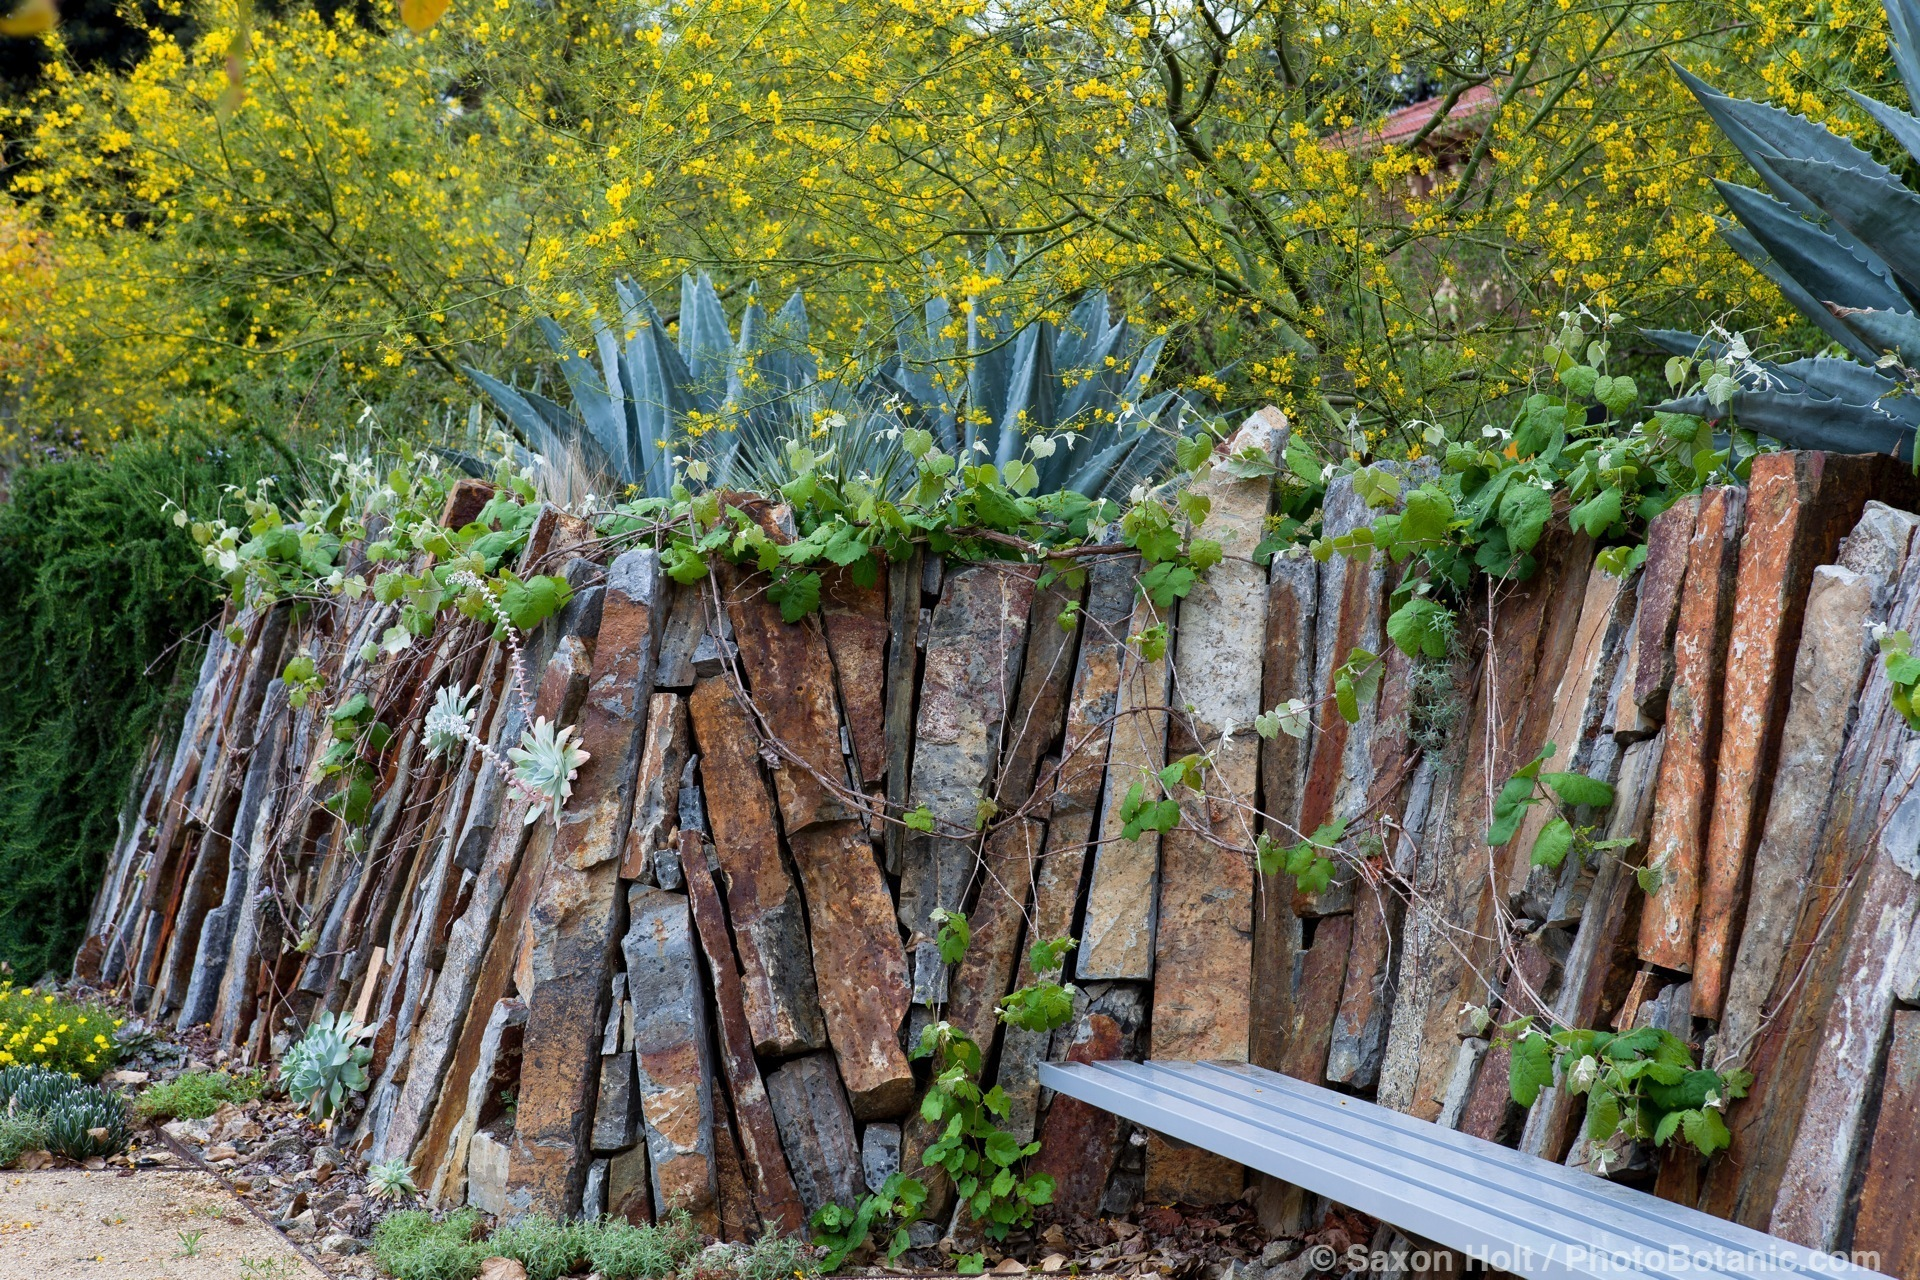 Dry stack stone wall in dry climate,drought tolerant garden at Los Angeles Natural History Museum